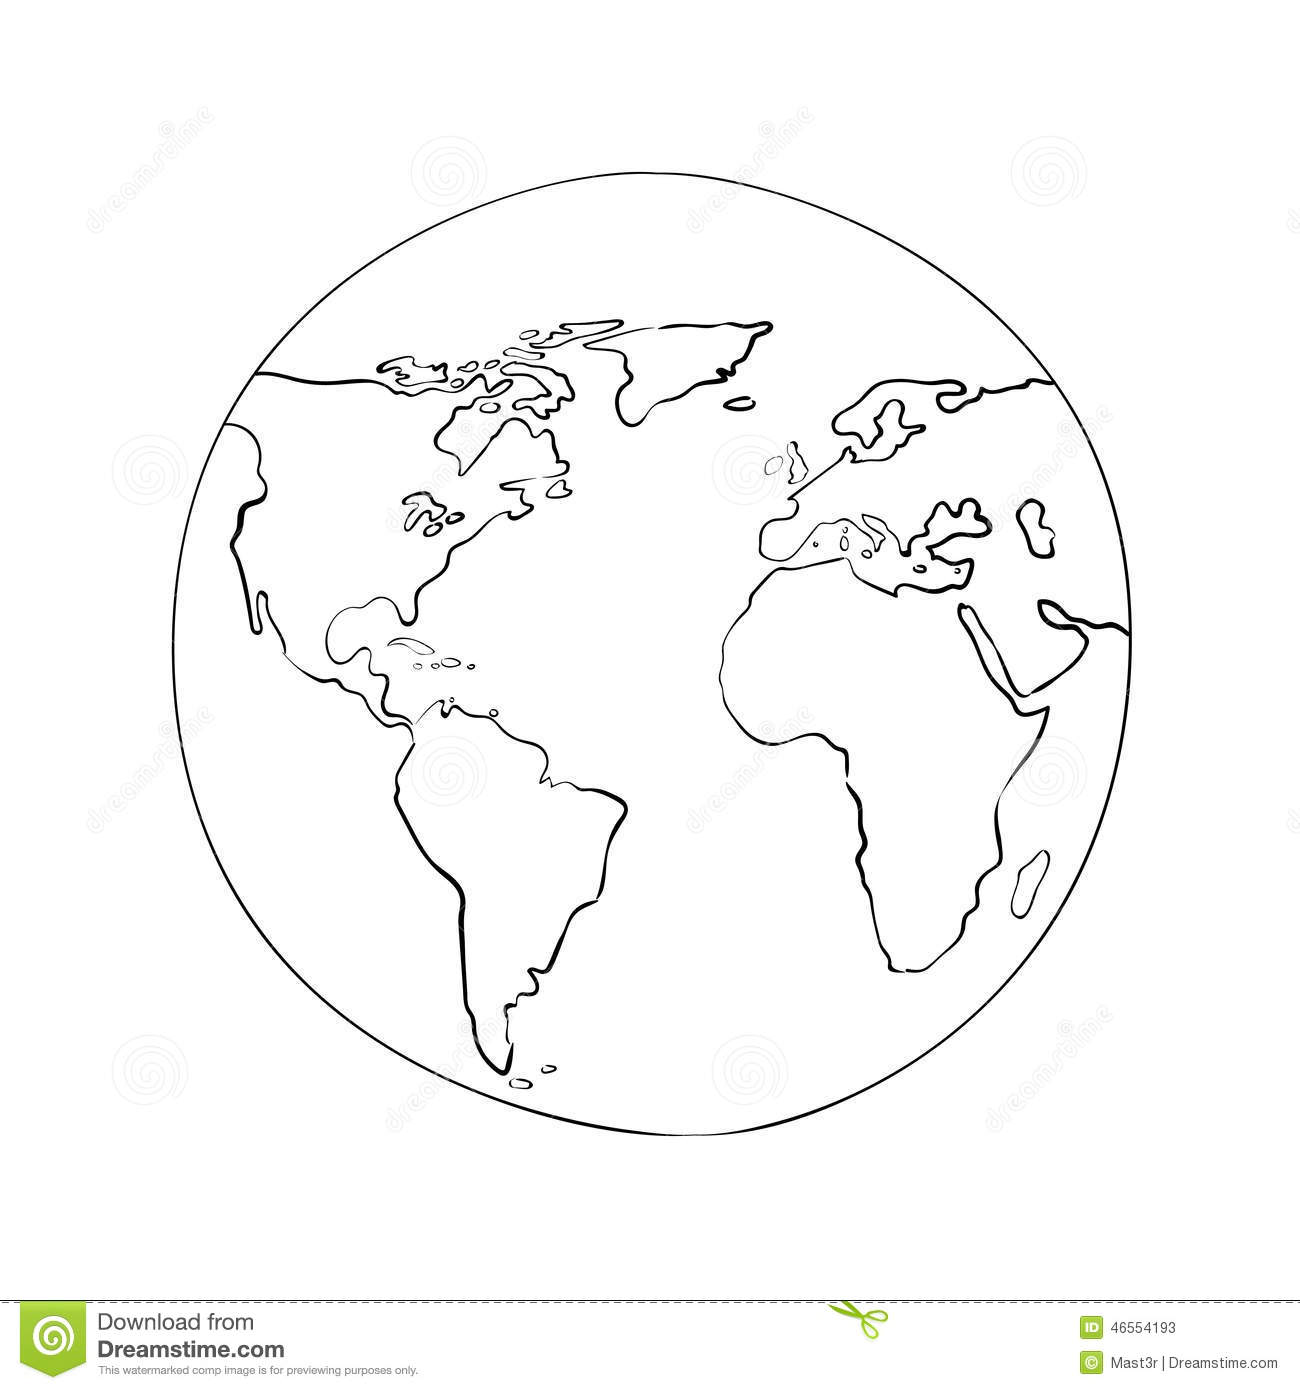 Sketch Globe World Map Black Vector Illustration Stock Vector - World map drawing outline